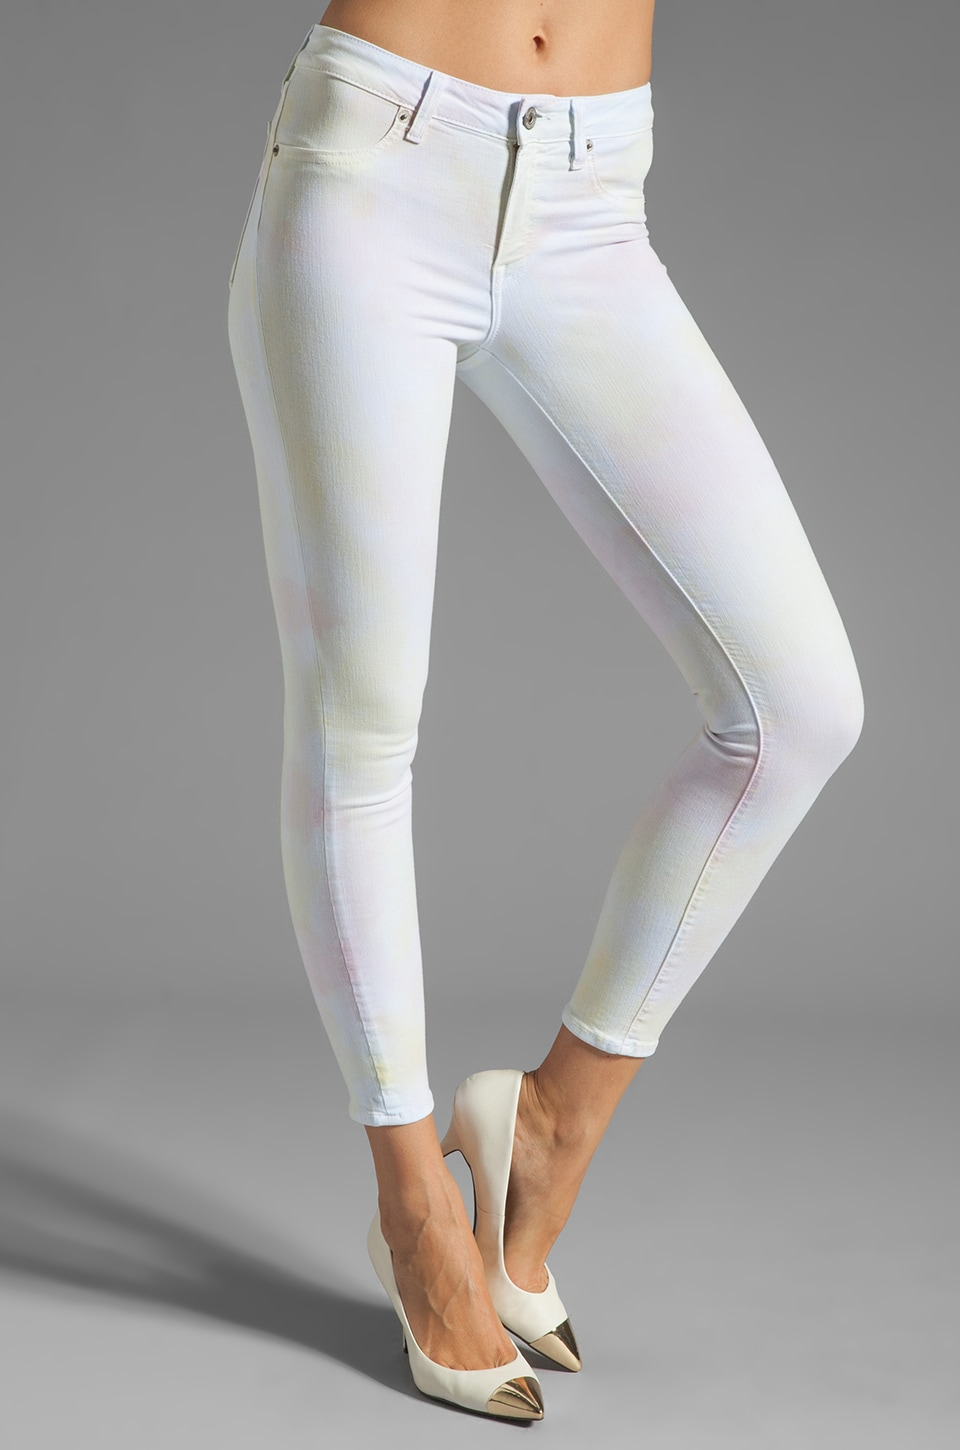 Dakota Collective Bridget Skinny Crop in Neon Cloud